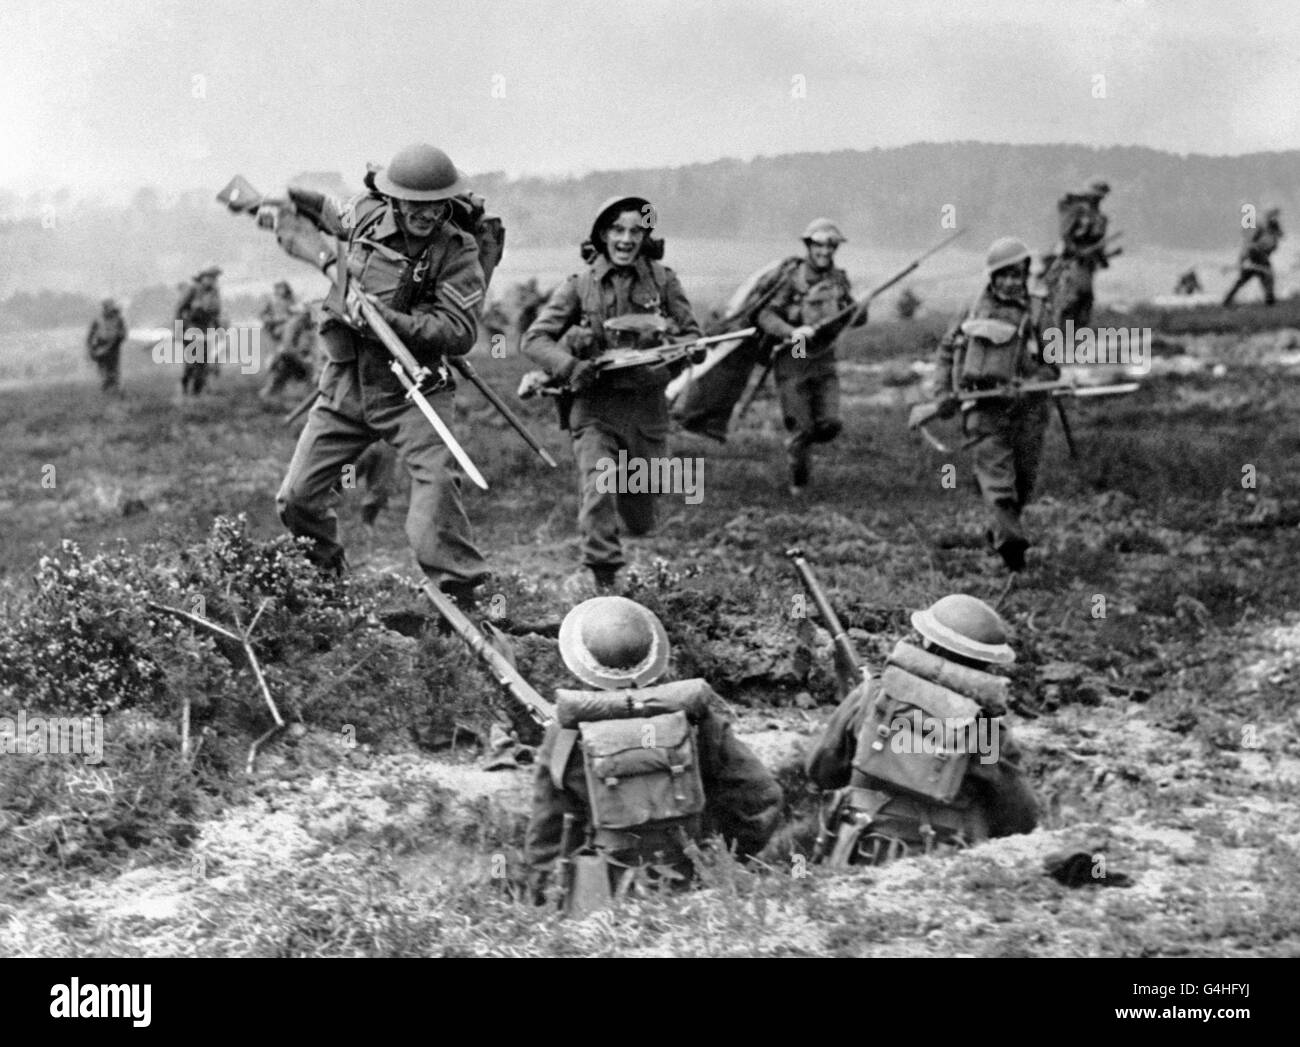 canadian troops in ww2 Diplomatic/military role of the united states and canada in wwii mitasha sujan  nikita mainaly shay fajardo united states: diplomatic role after wwi.